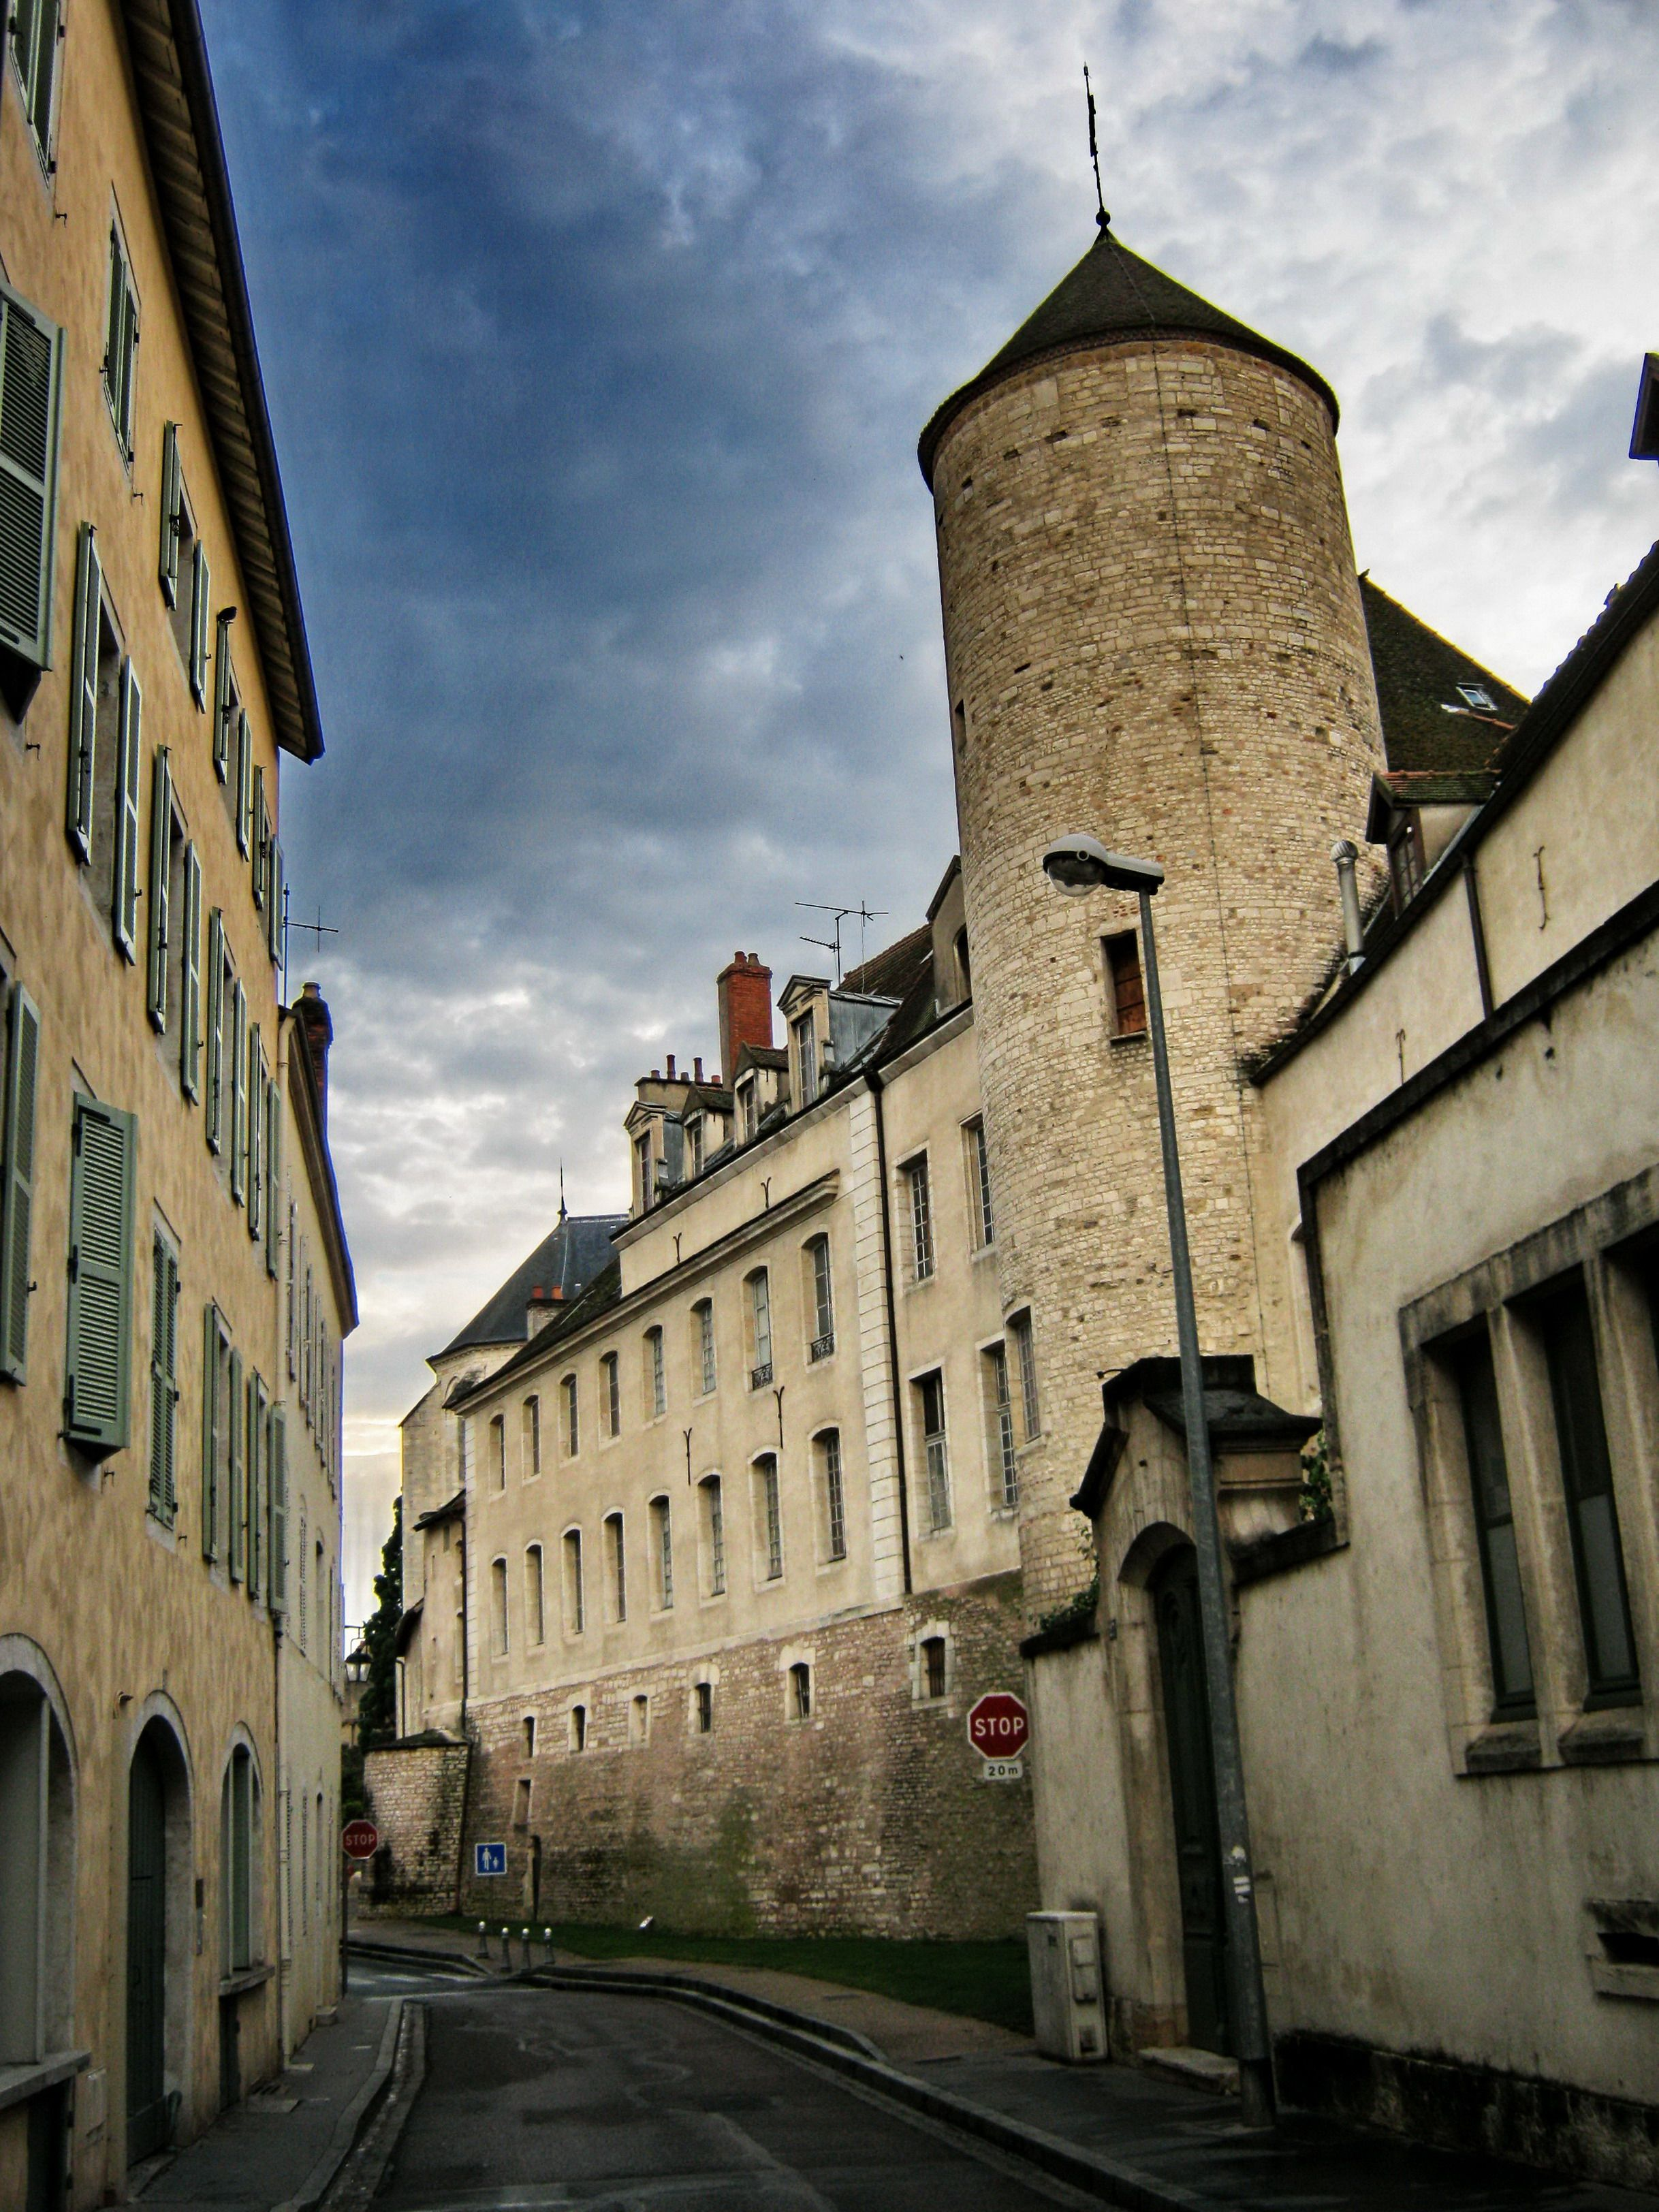 CHALON SUR SAONE (Bourgogne) - by Guido Tosatto